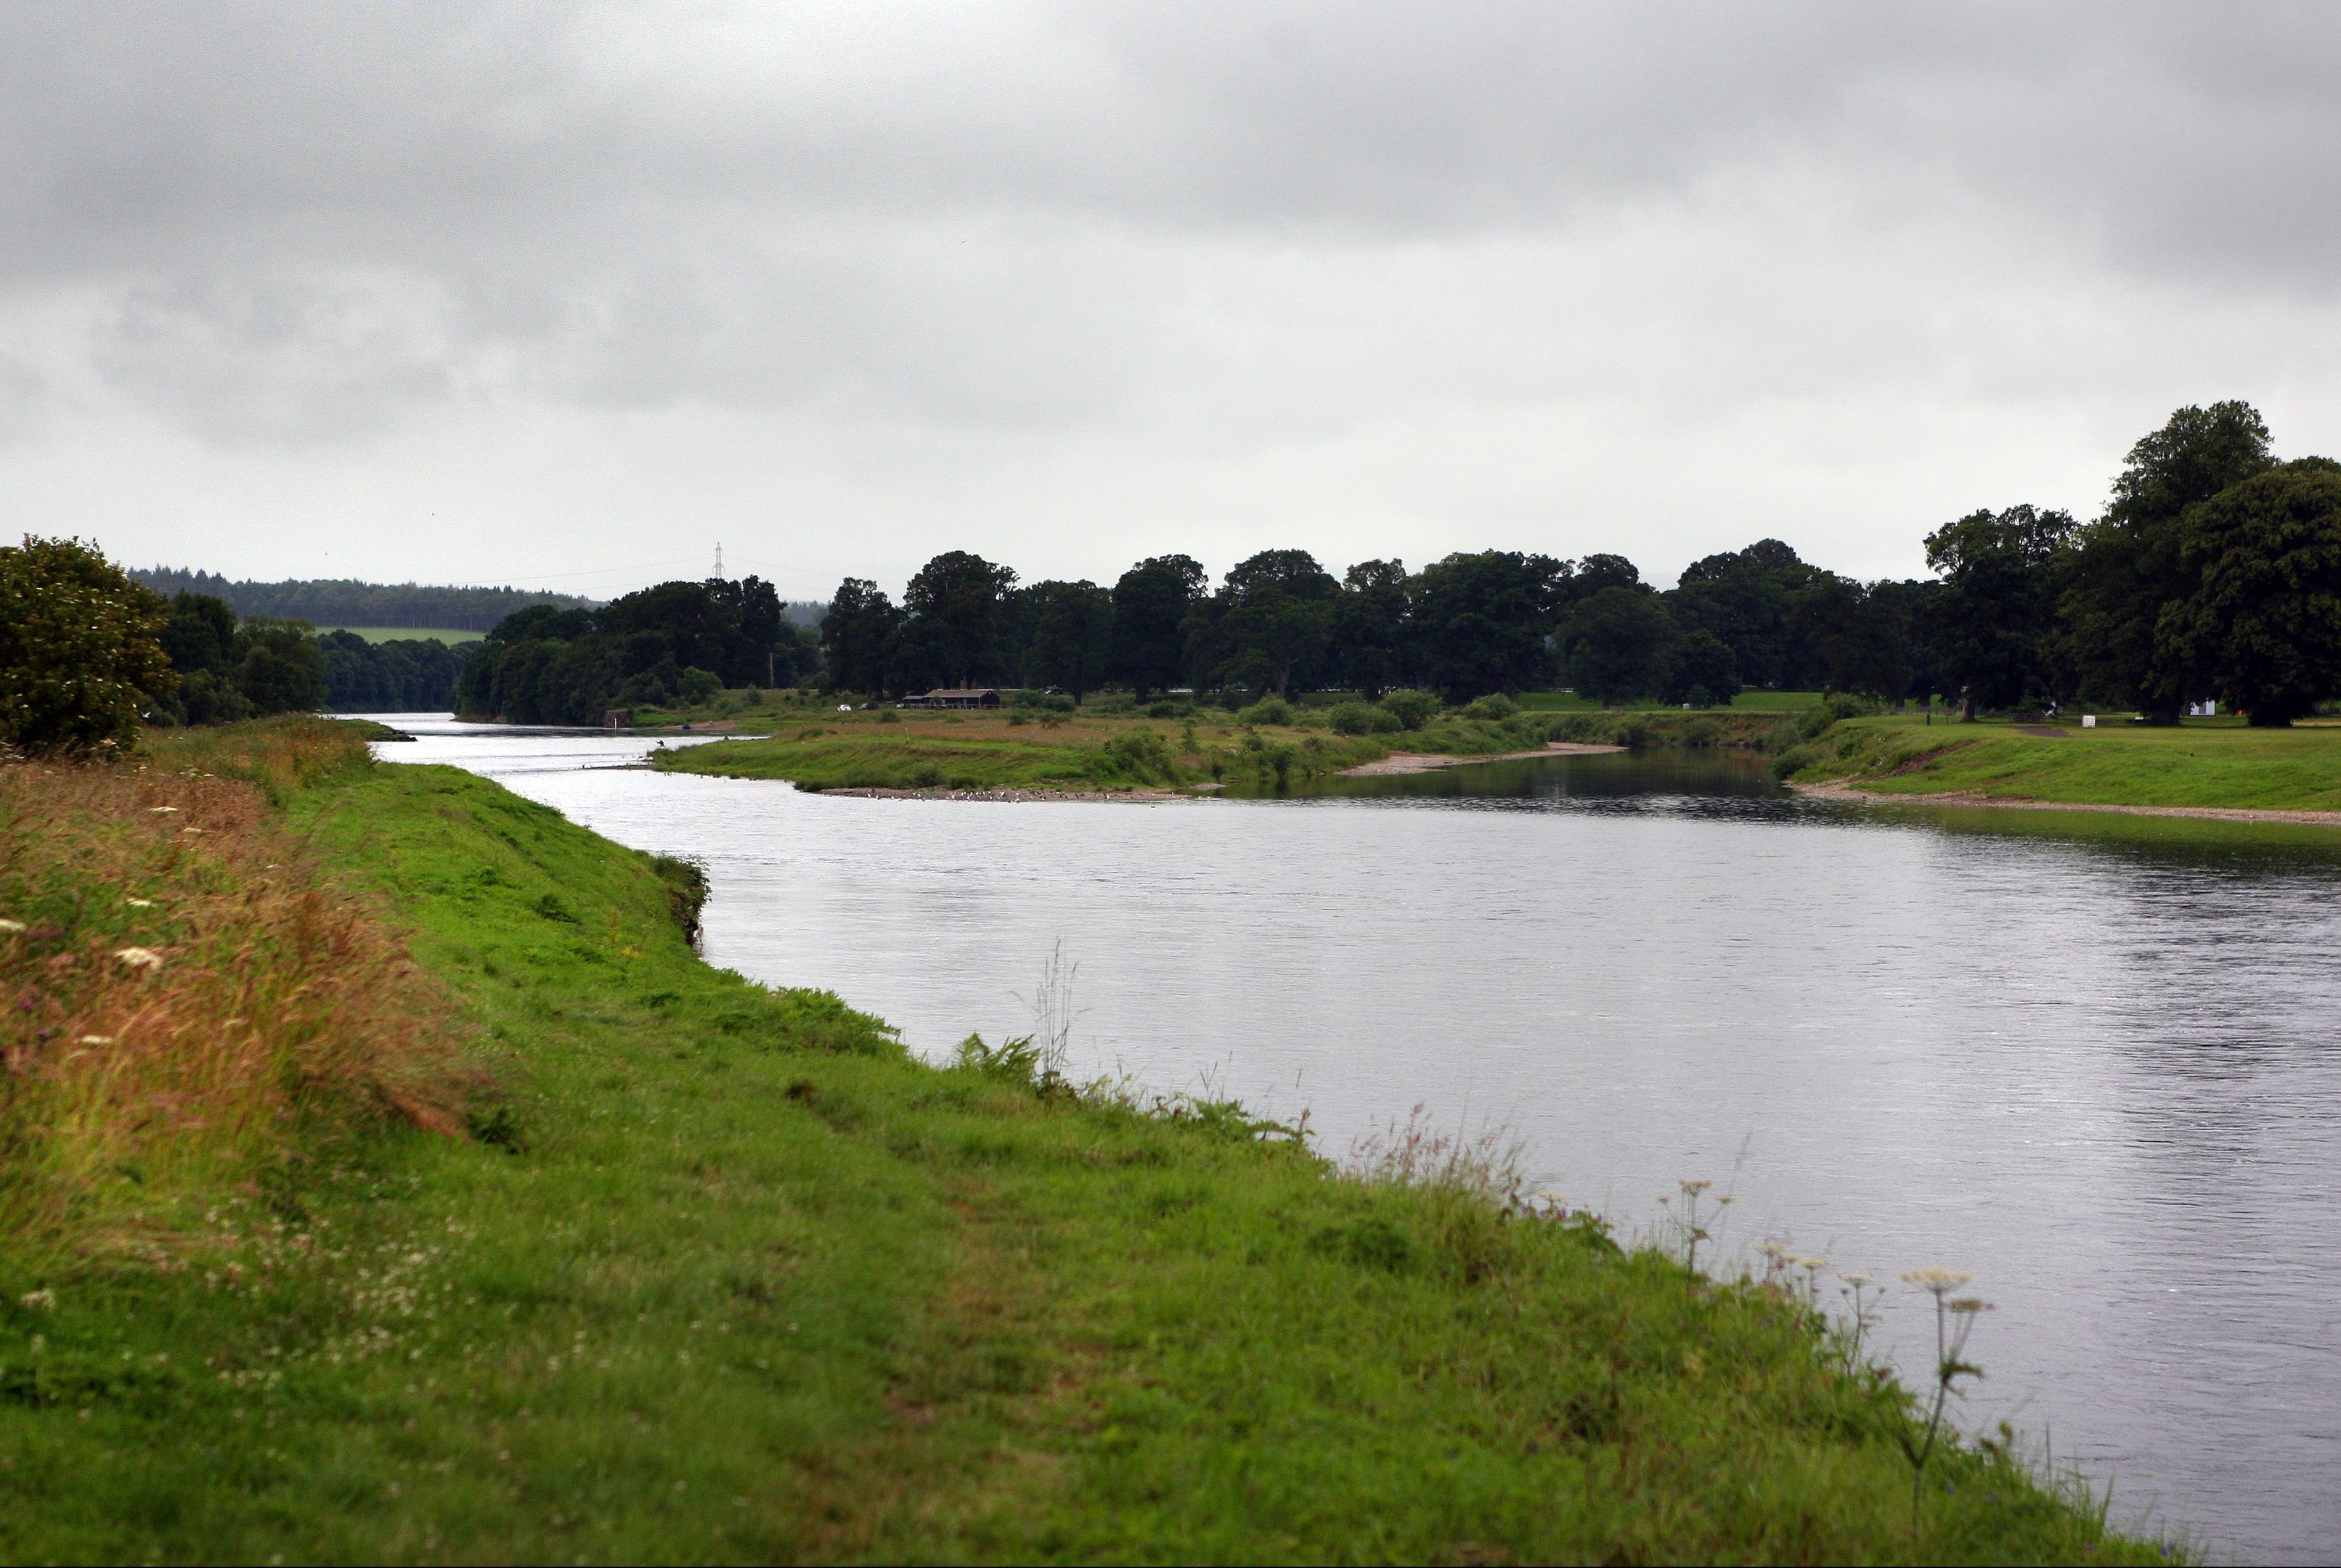 The river Tay near Muirton, Perth.